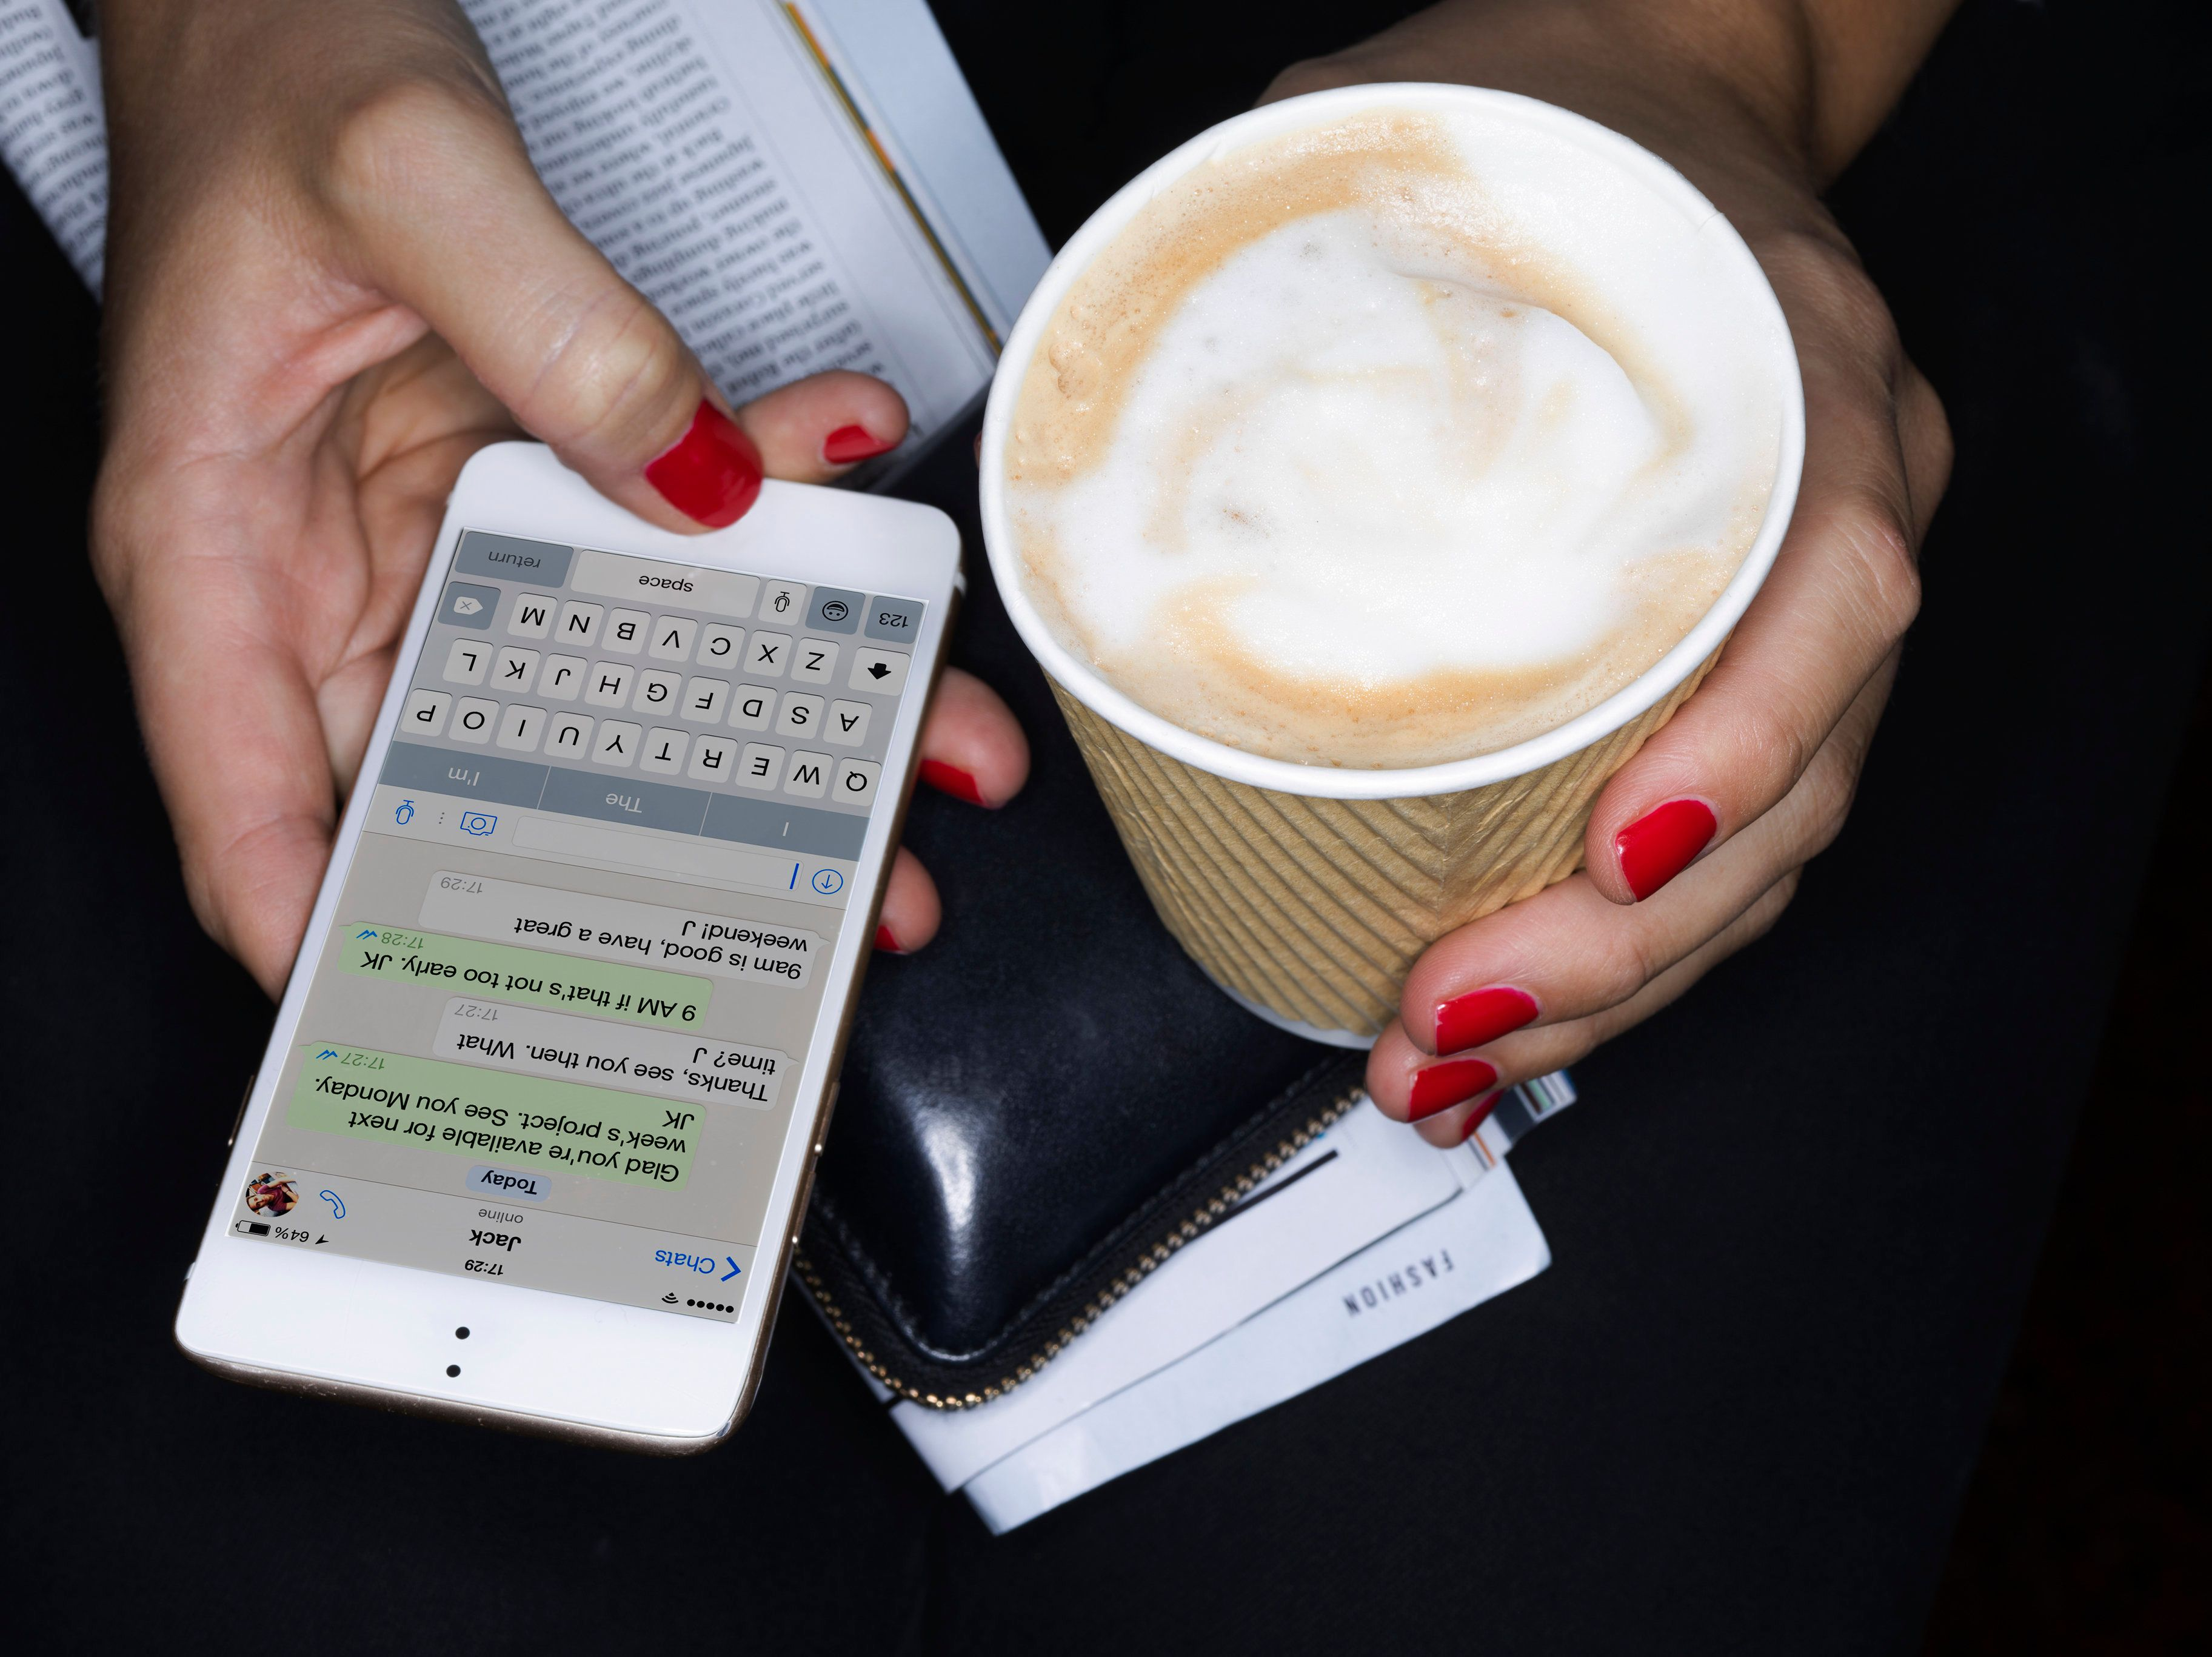 Texting may cause some people's brain waves to change temporarily.